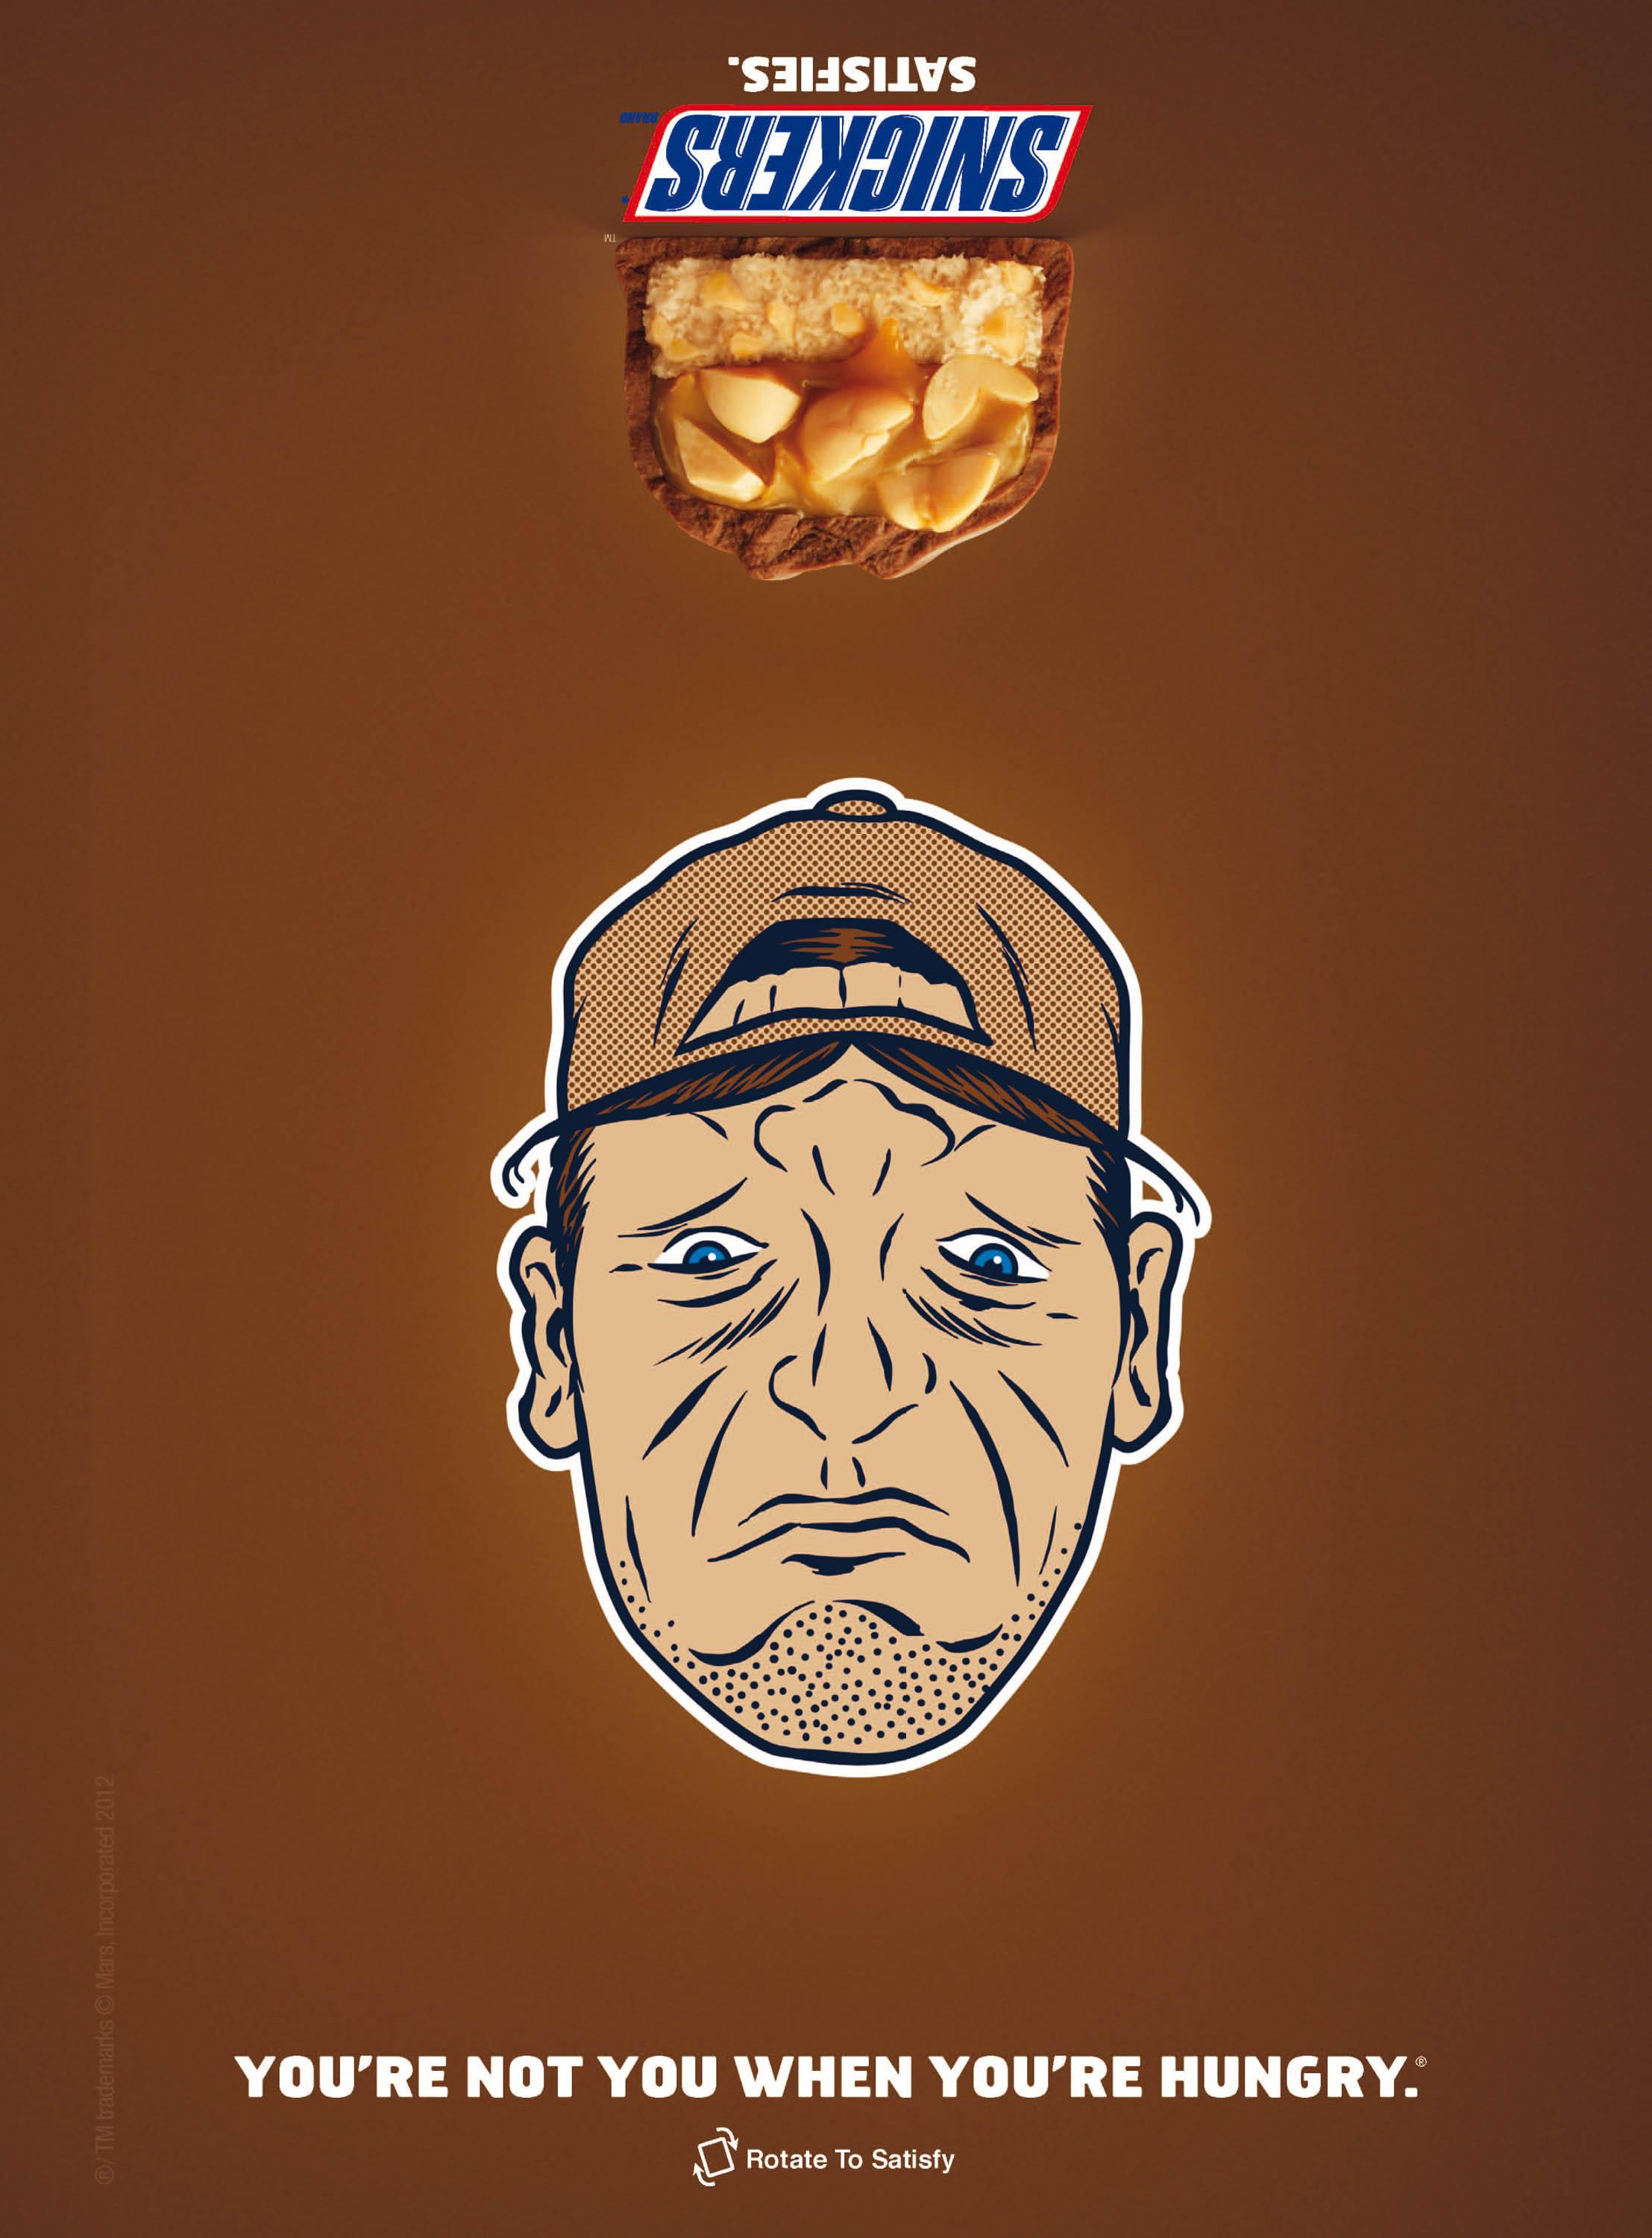 Snickers-Faces-Baseball-Cap.jpg (2215×3000)